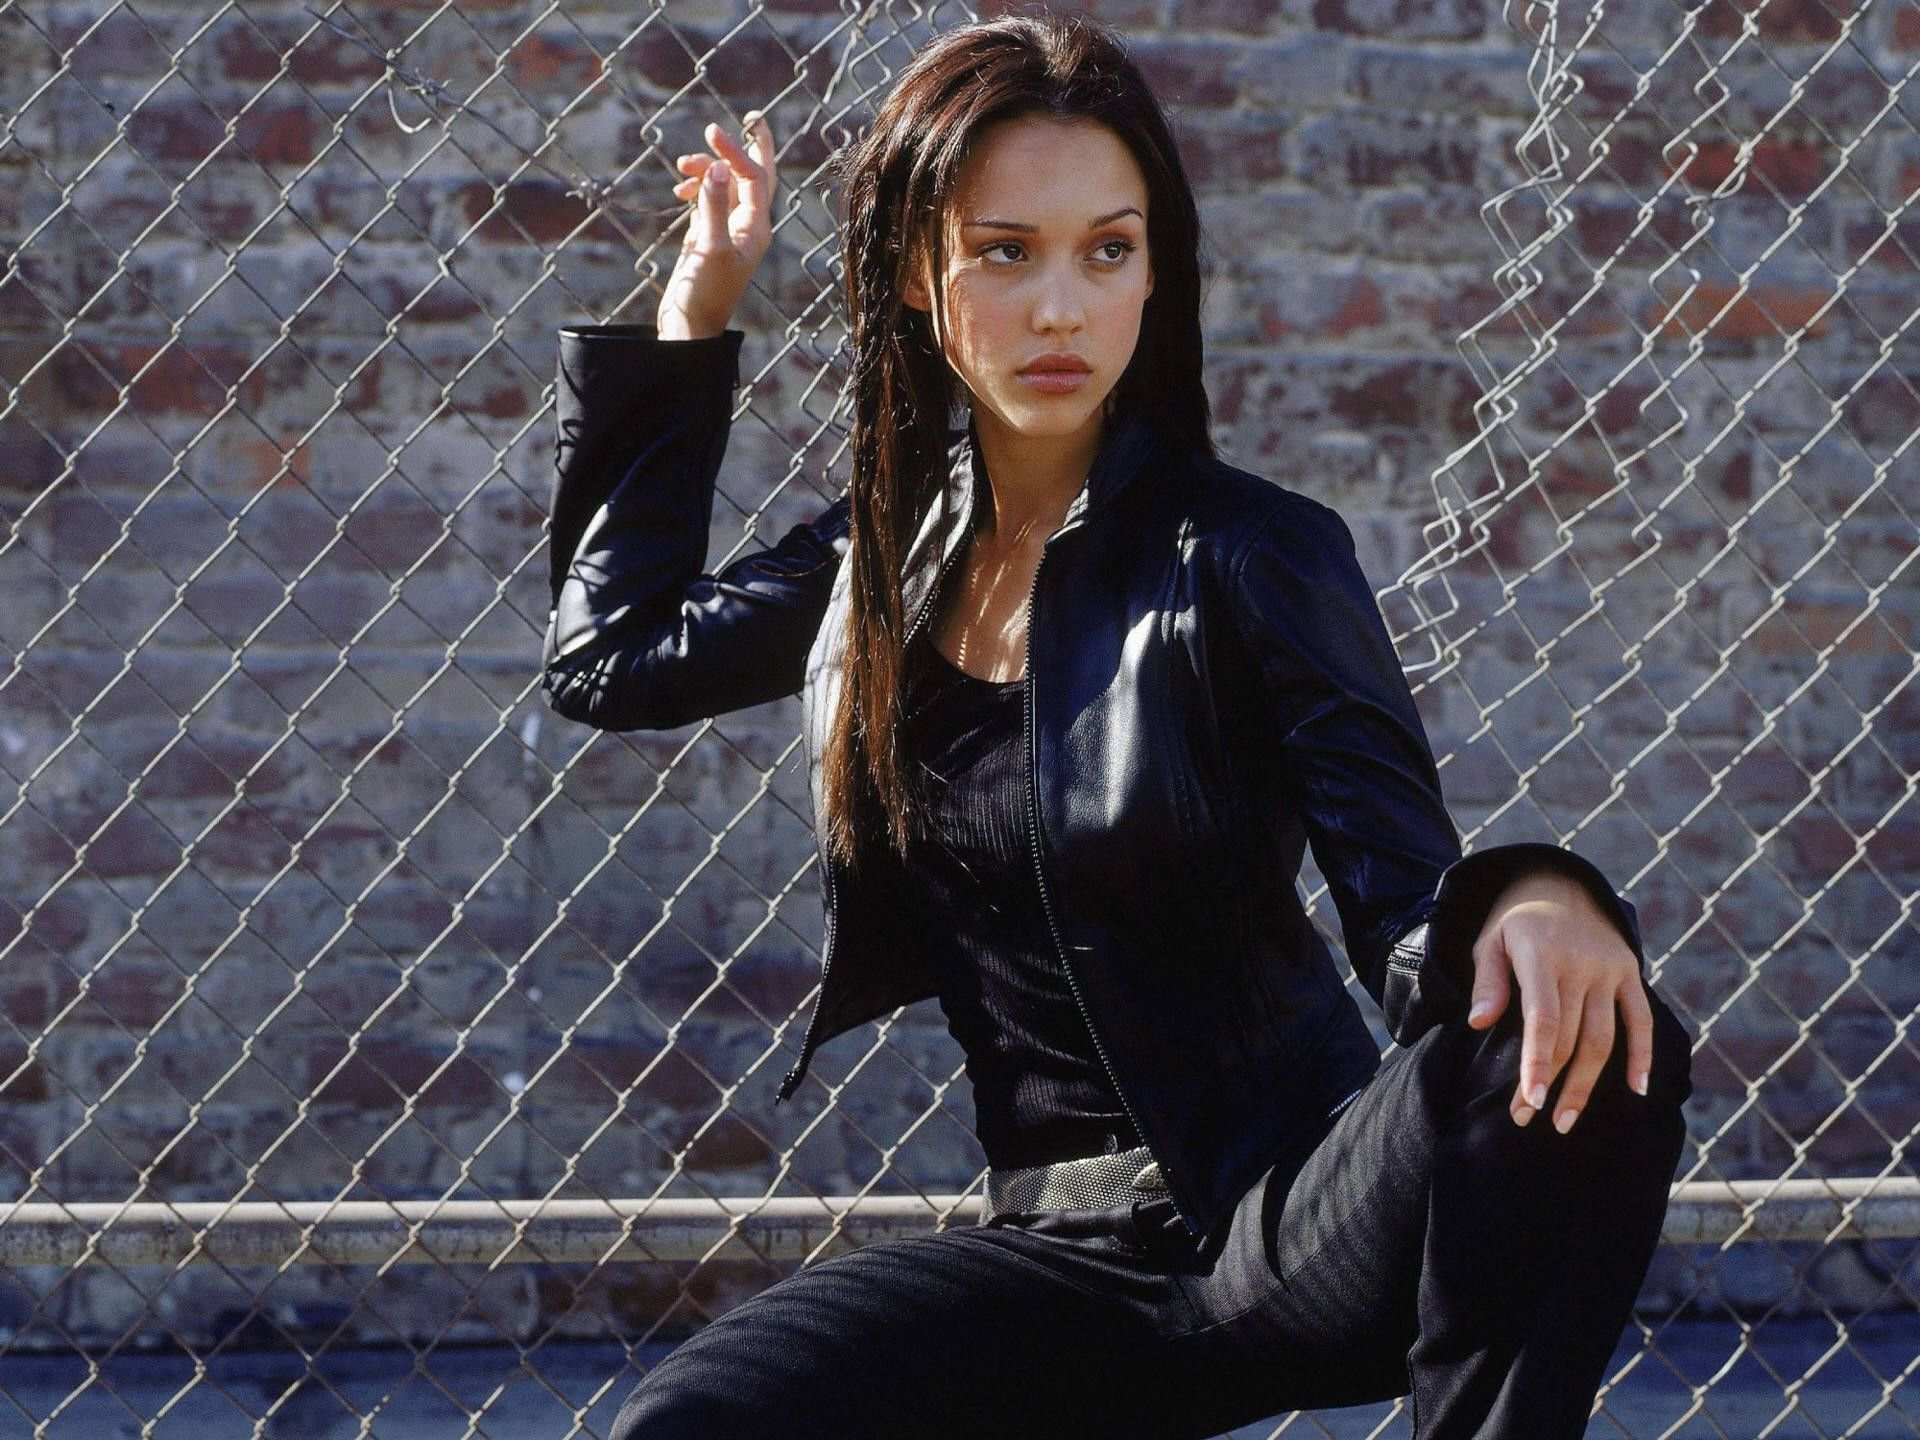 Image Result For Straight Black Hair Outdoors Jessica Alba Hot